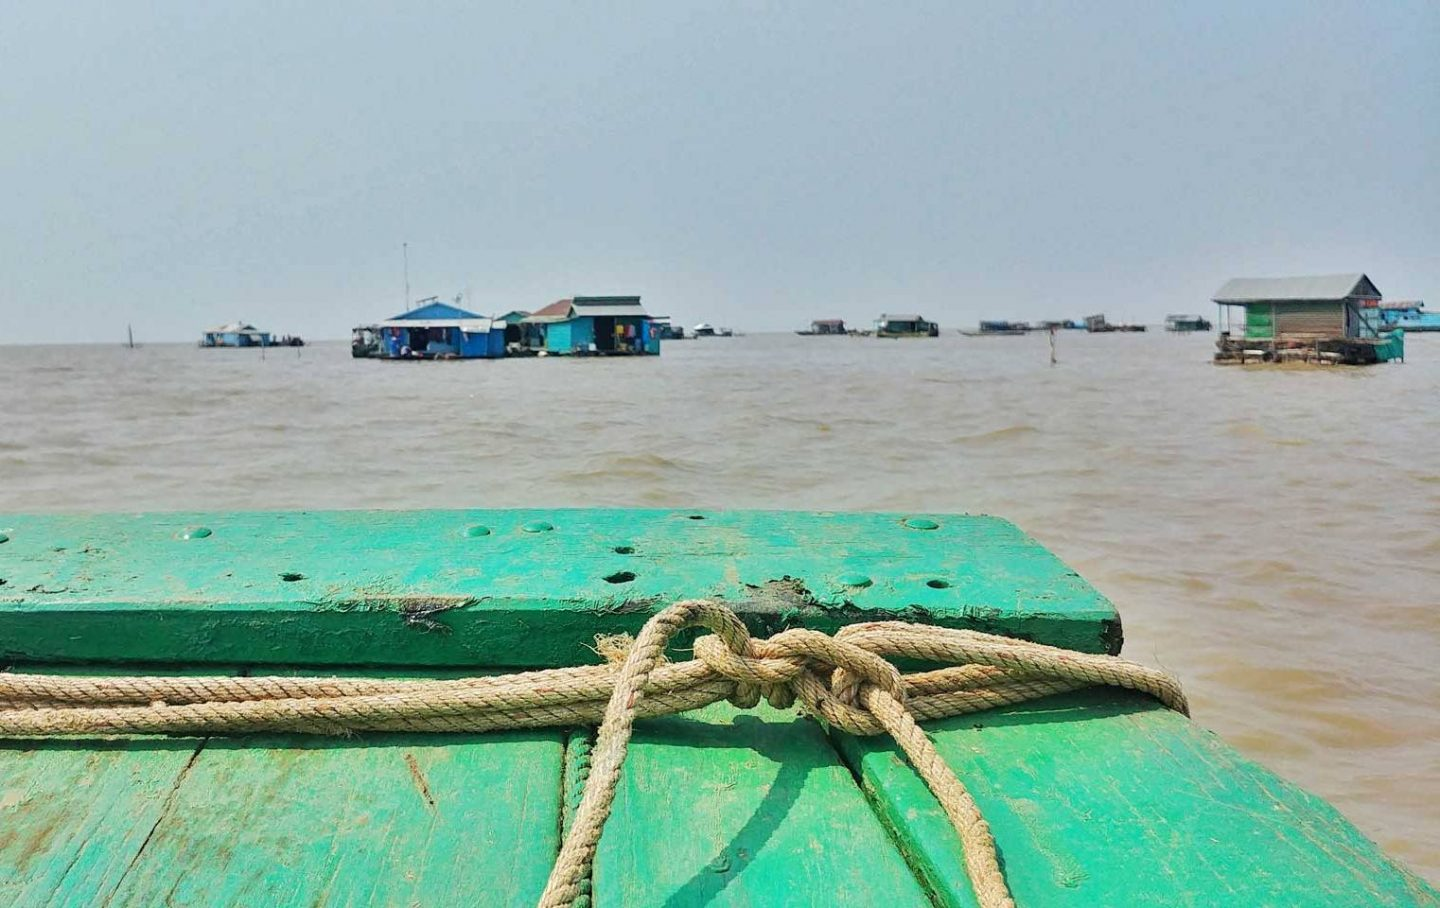 A view from the green boat overlooking the floating houses on the river